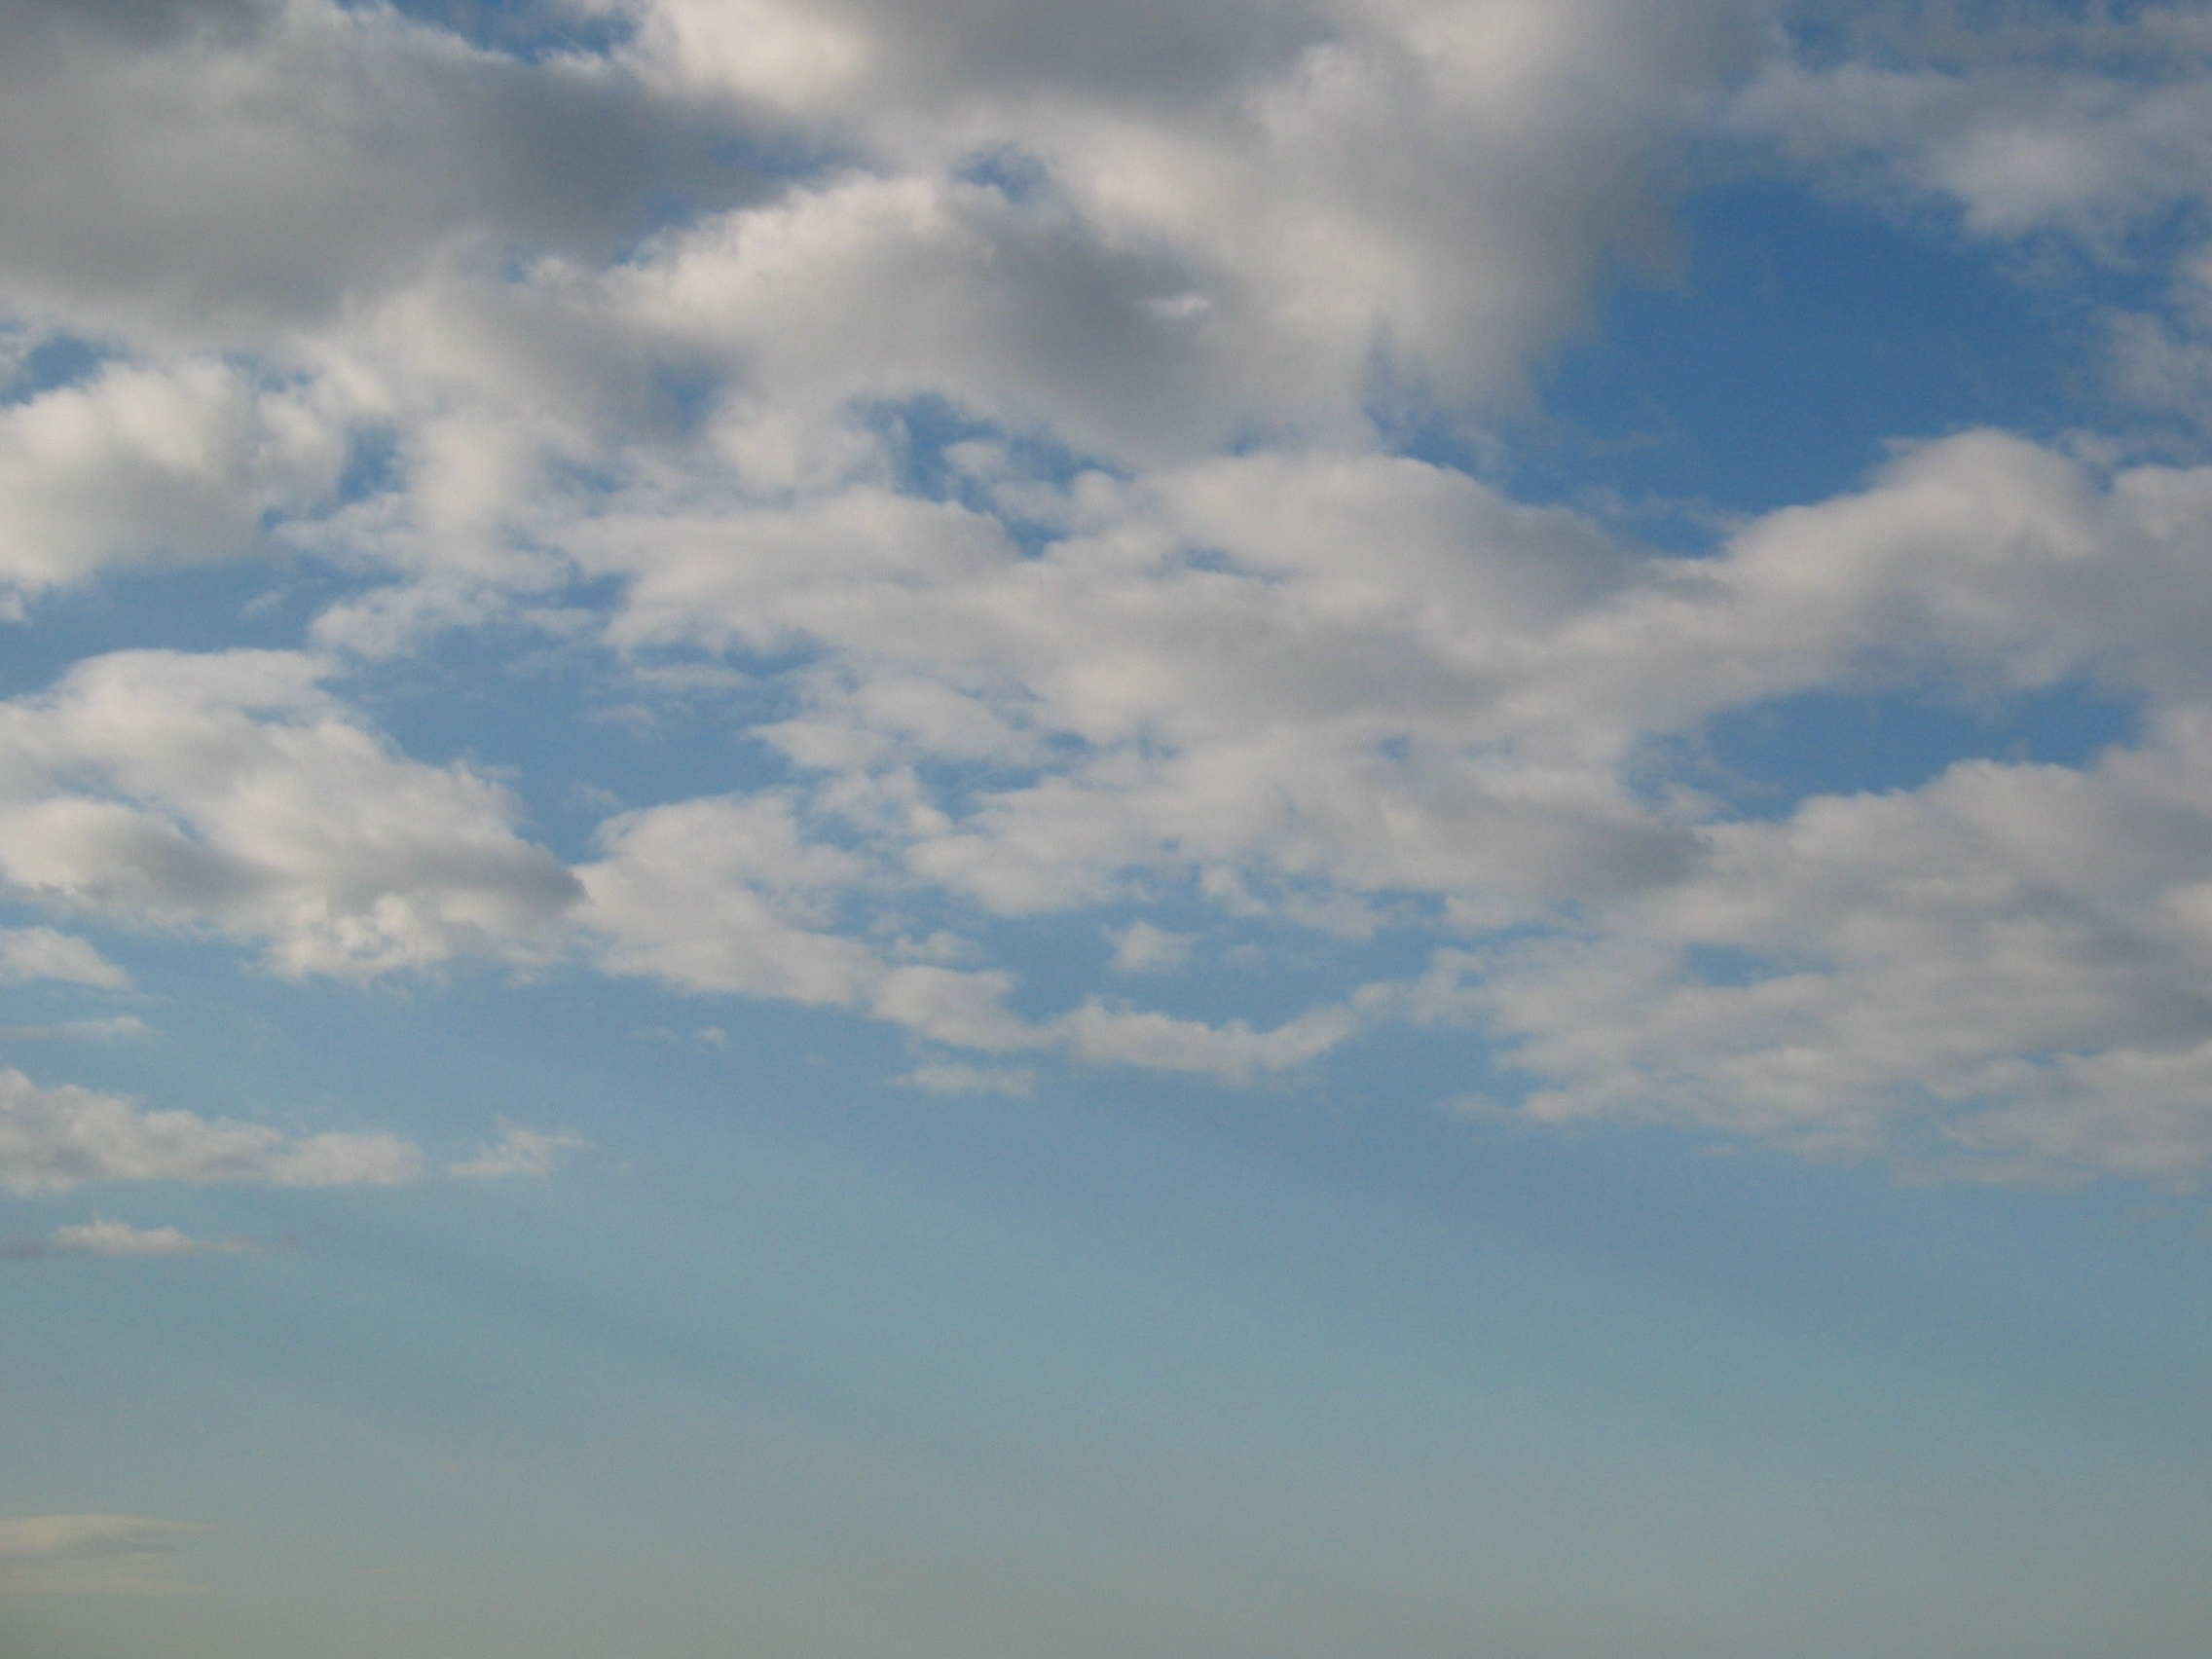 geoff_vane sky cloud clouds expansive blue white fluffy